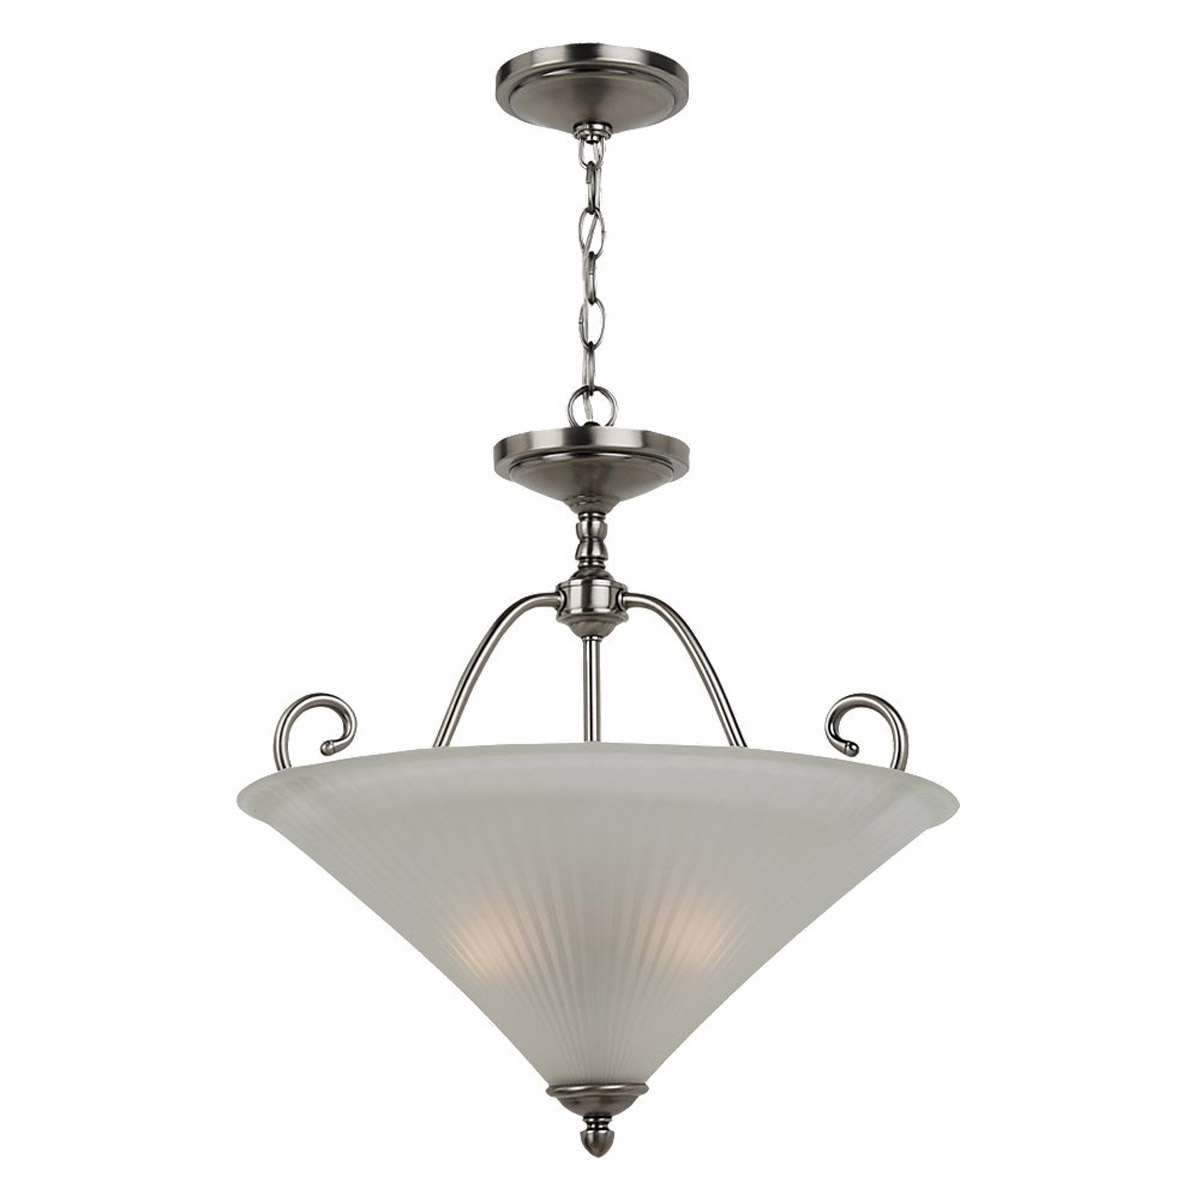 Sea Gull Lighting Joliet 3 Light Pendant Inverted in Antique Brushed Nickel 65936-965